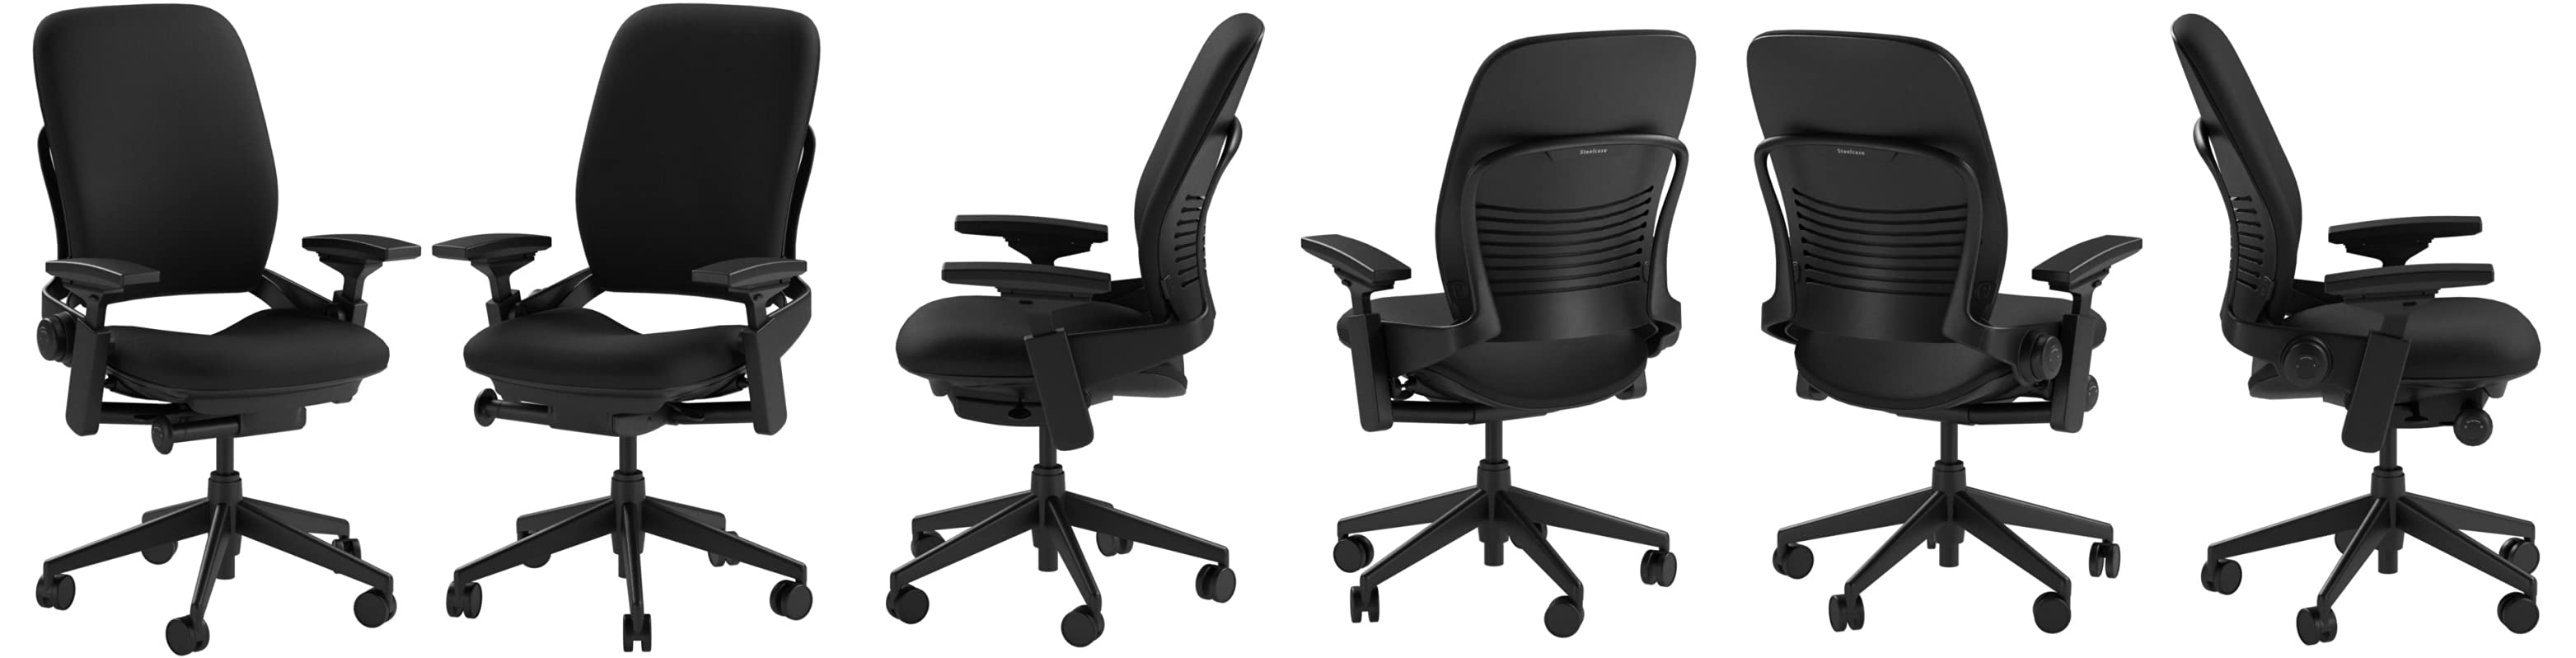 best-office-chair-for-bad-back